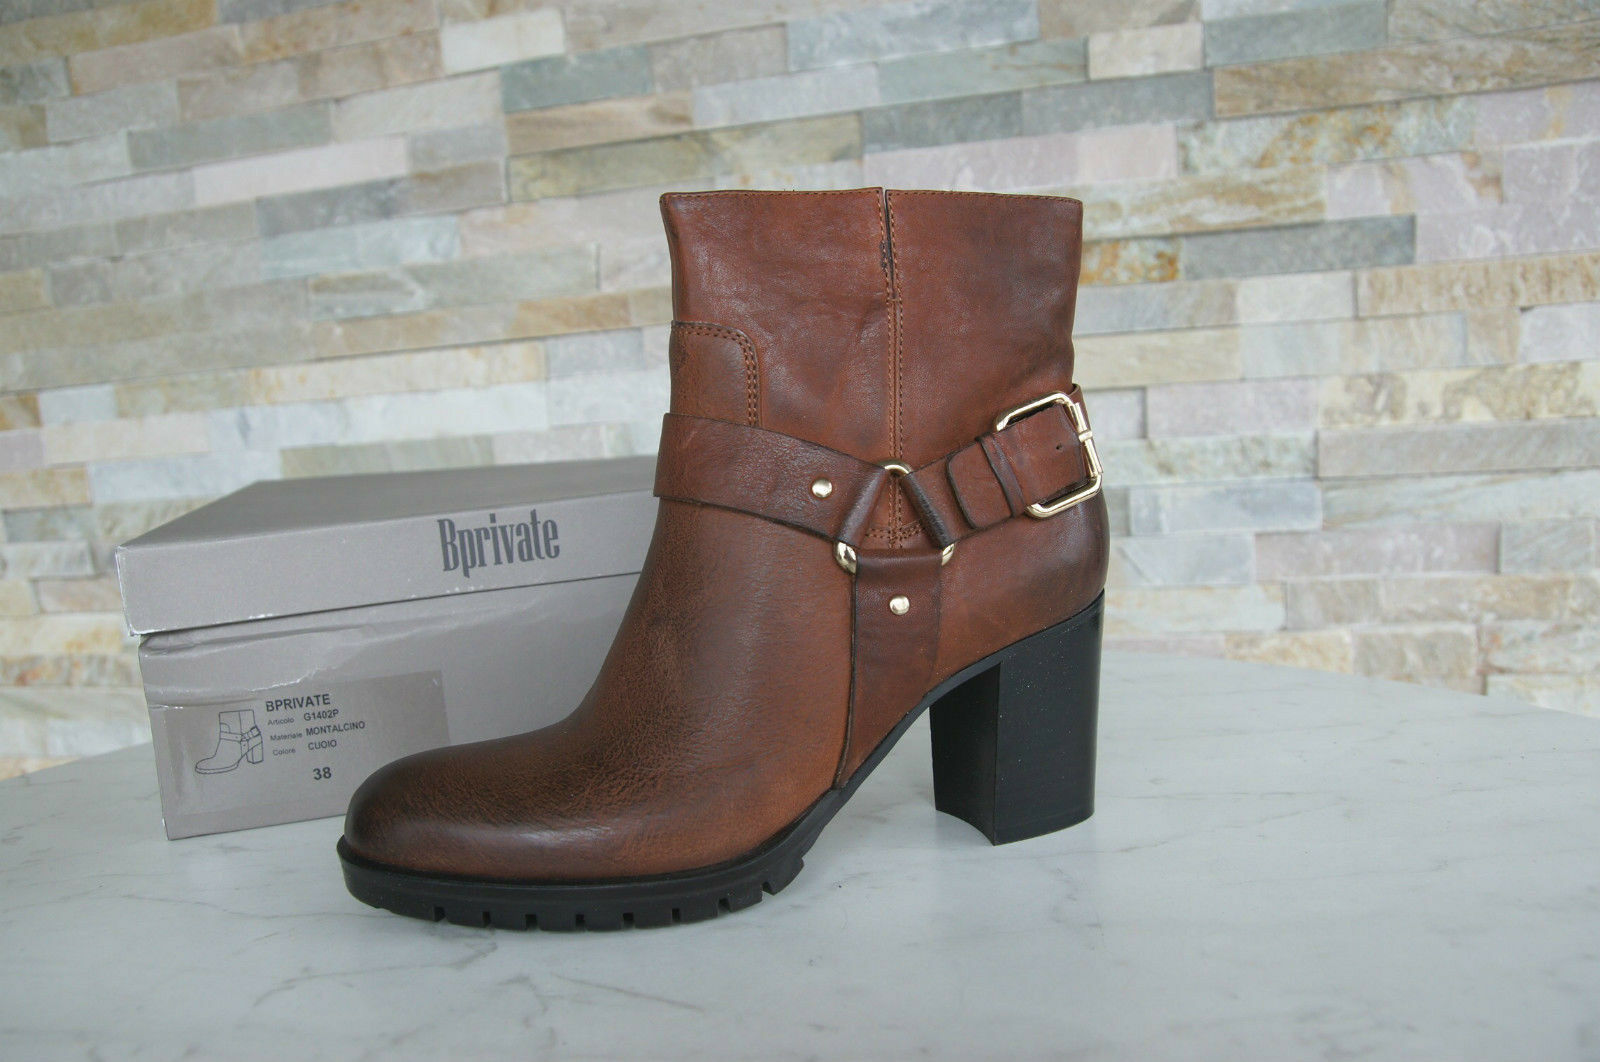 Bprivate Size 41 Ankle Boots Boots Ankle Boots shoes Brown New Previously